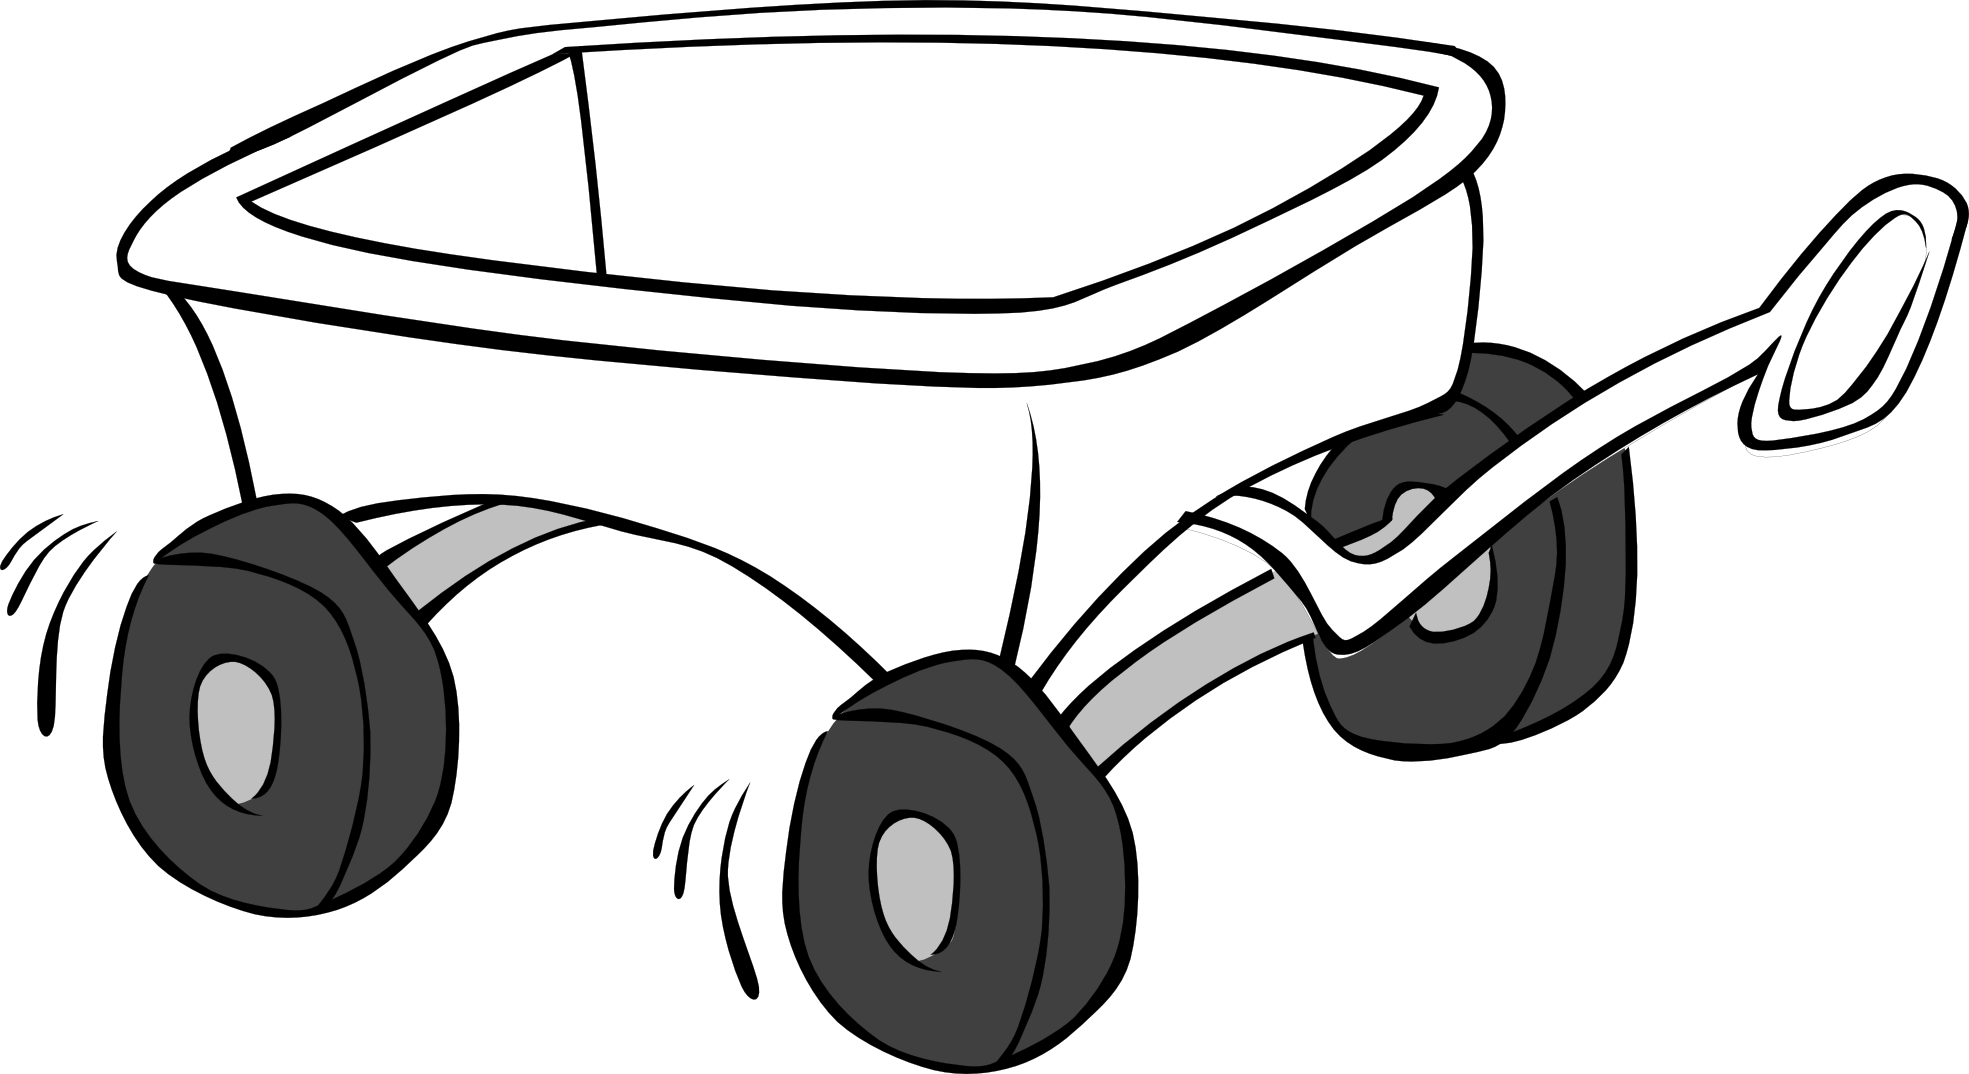 Covered wagon coloring pages for kids ~ Wagon Clipart Black And White   Clipart Panda - Free ...